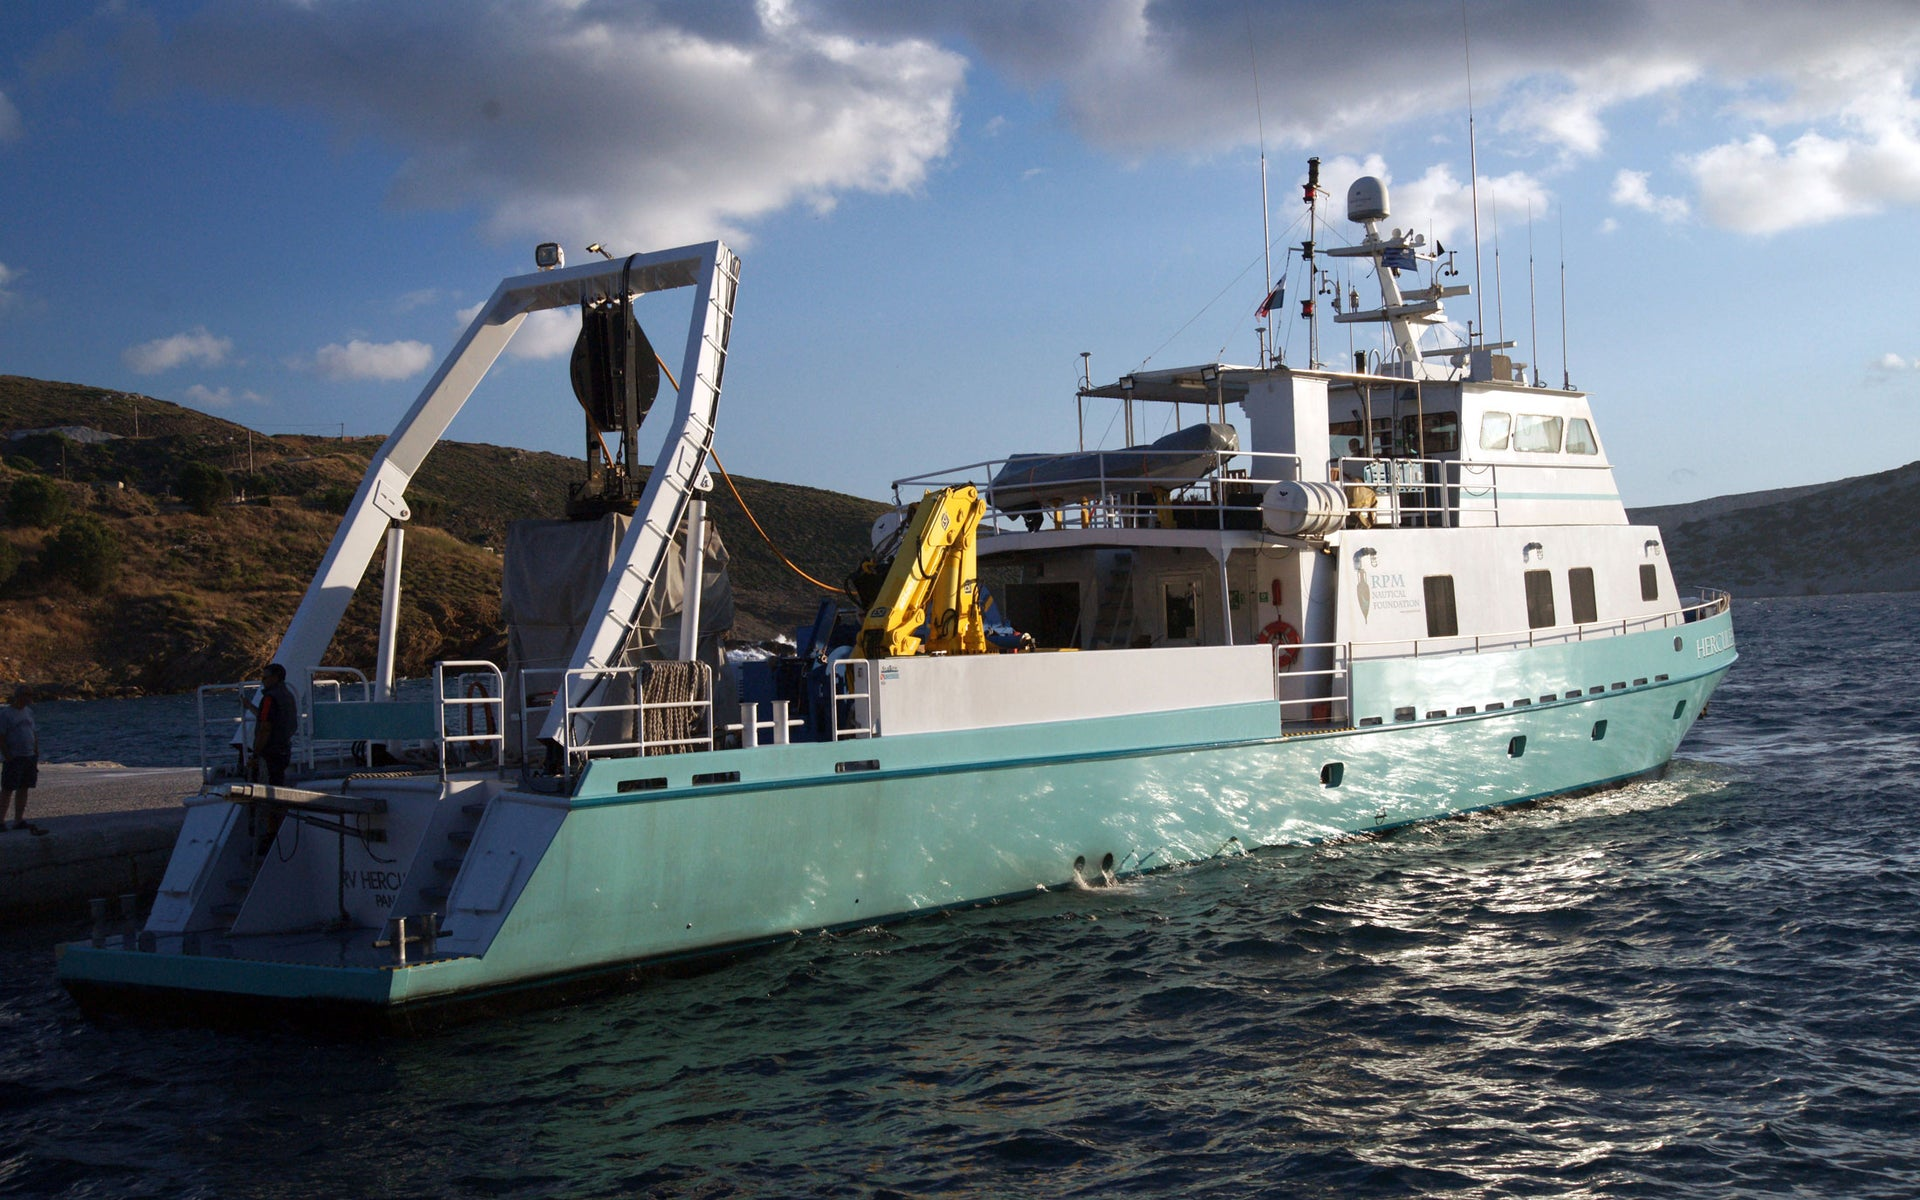 RPM Nautical Foundation's scientific research vessel RV Hercules at port in Fourni.